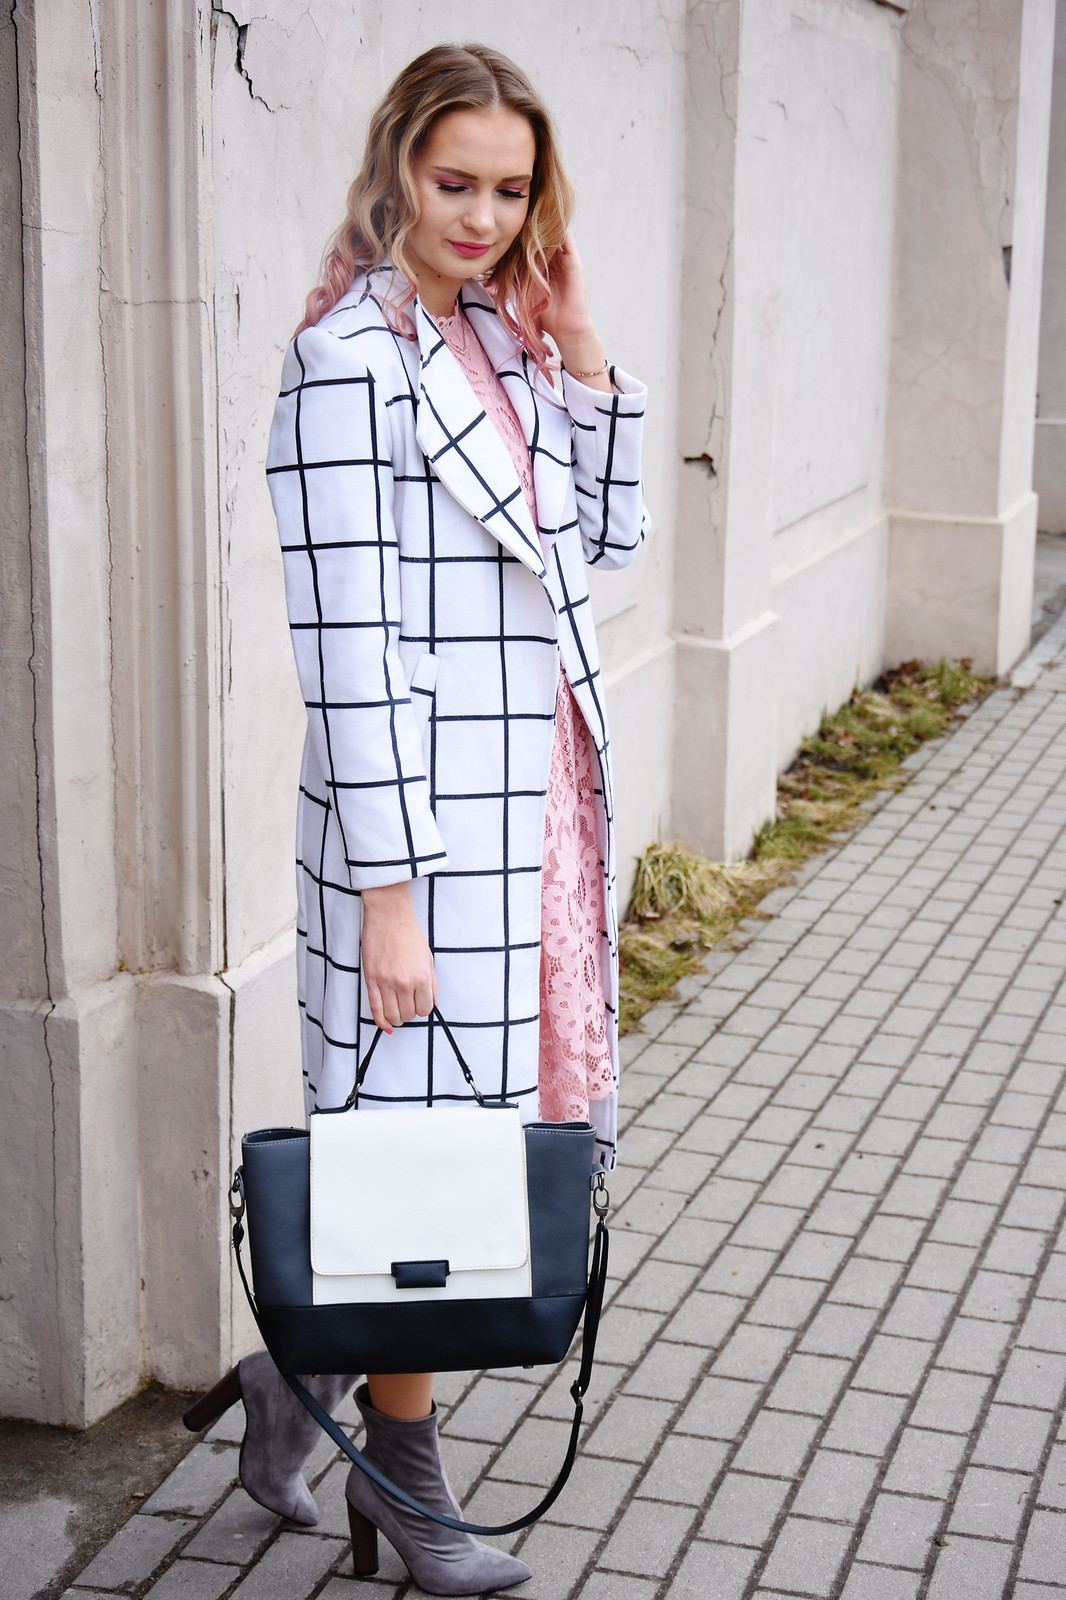 Spring outfit inspiration feminine and romantic